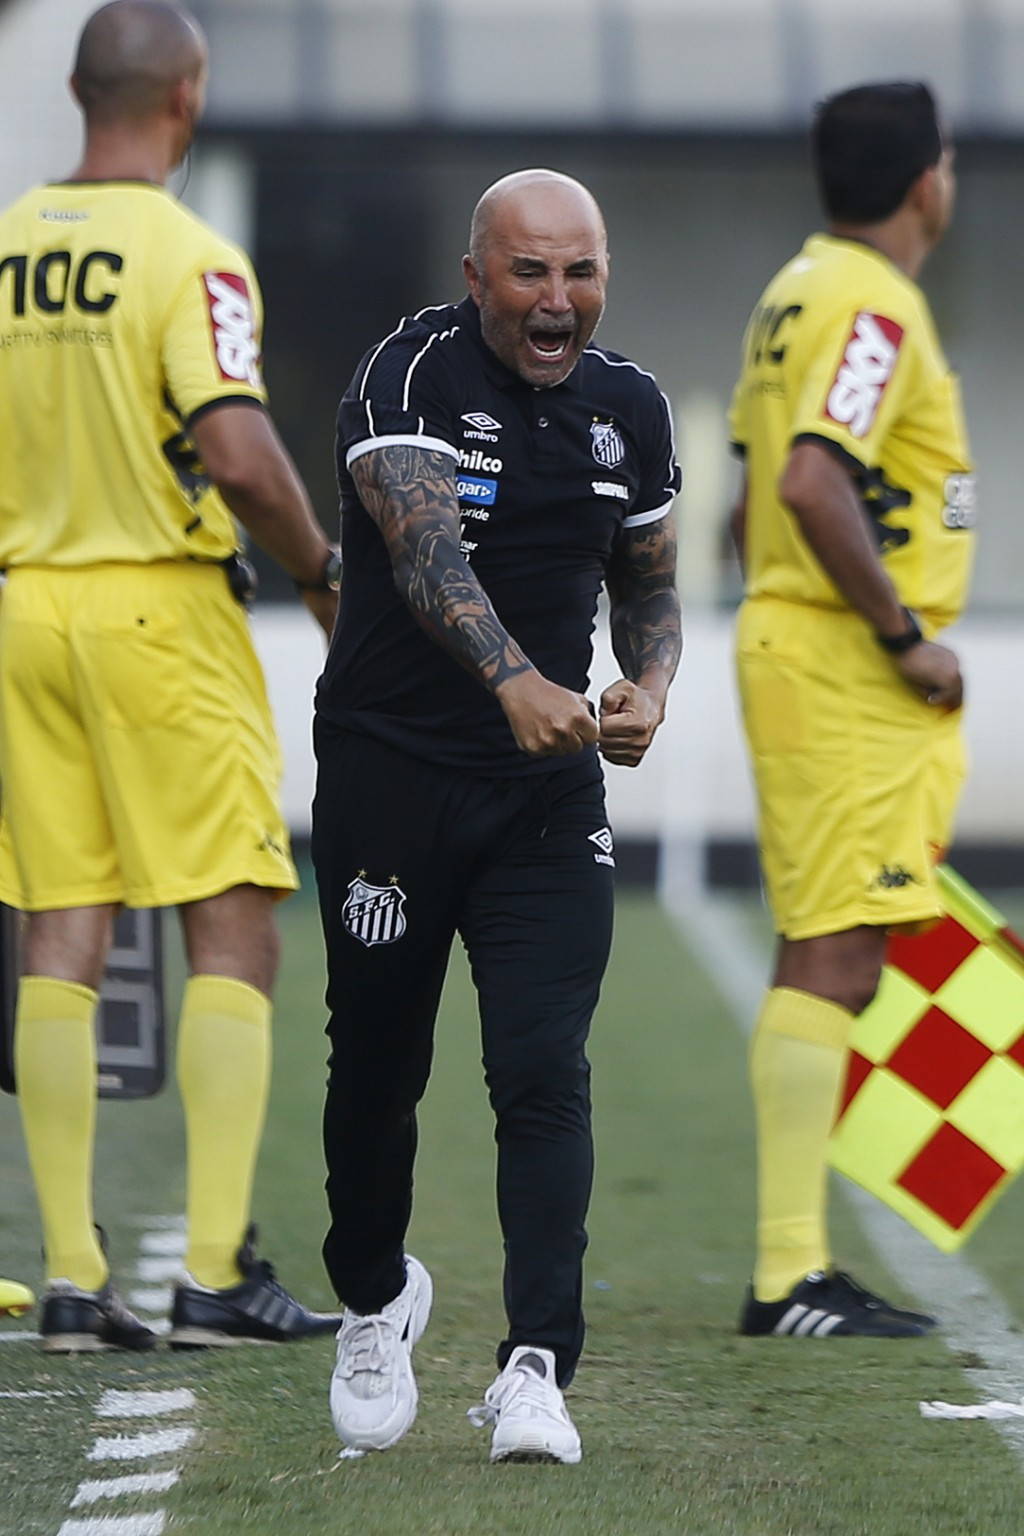 Jorge Sampaoli, coach of Santos, celebrates after the first goal during a Sao Paulo Soccer league championship match against Ferroviaria in Santos, Br...